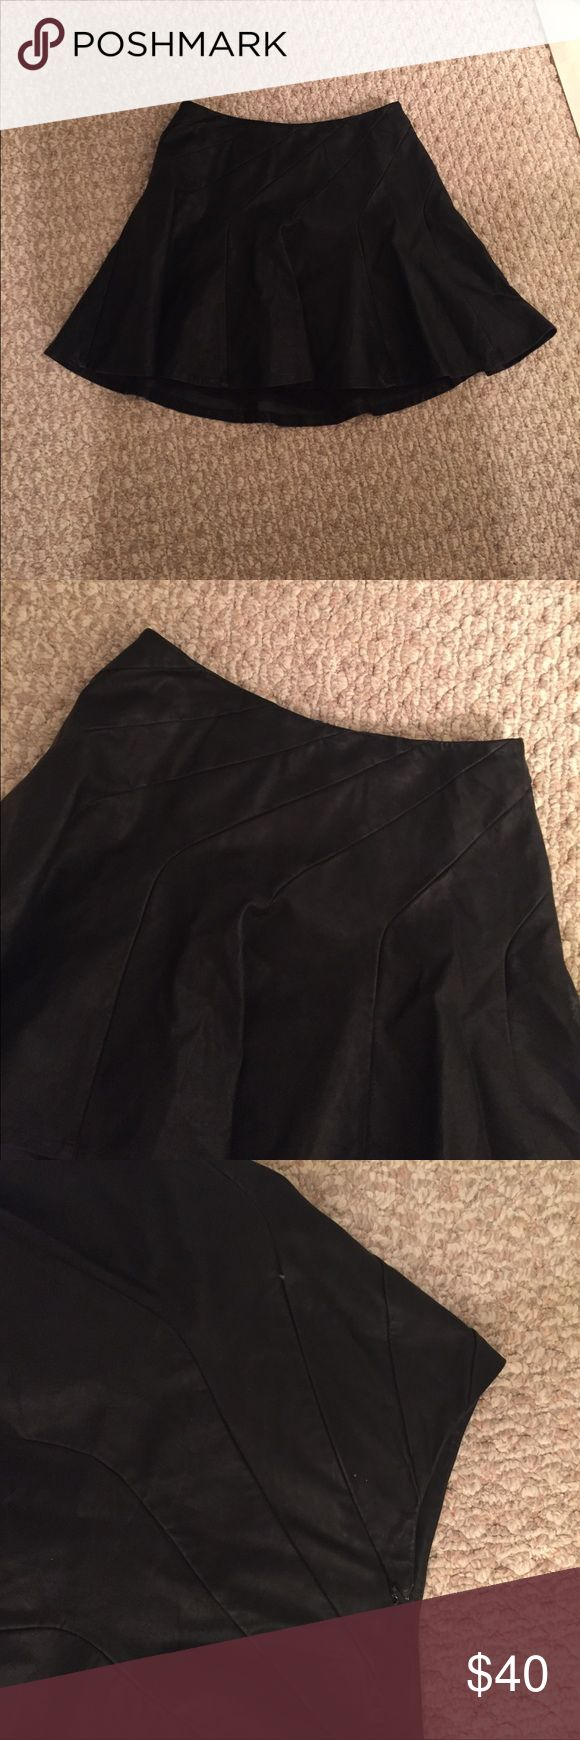 Free people leather skater skirt Black leather skater skirt. Side zip. Free People Skirts Circle & Skater